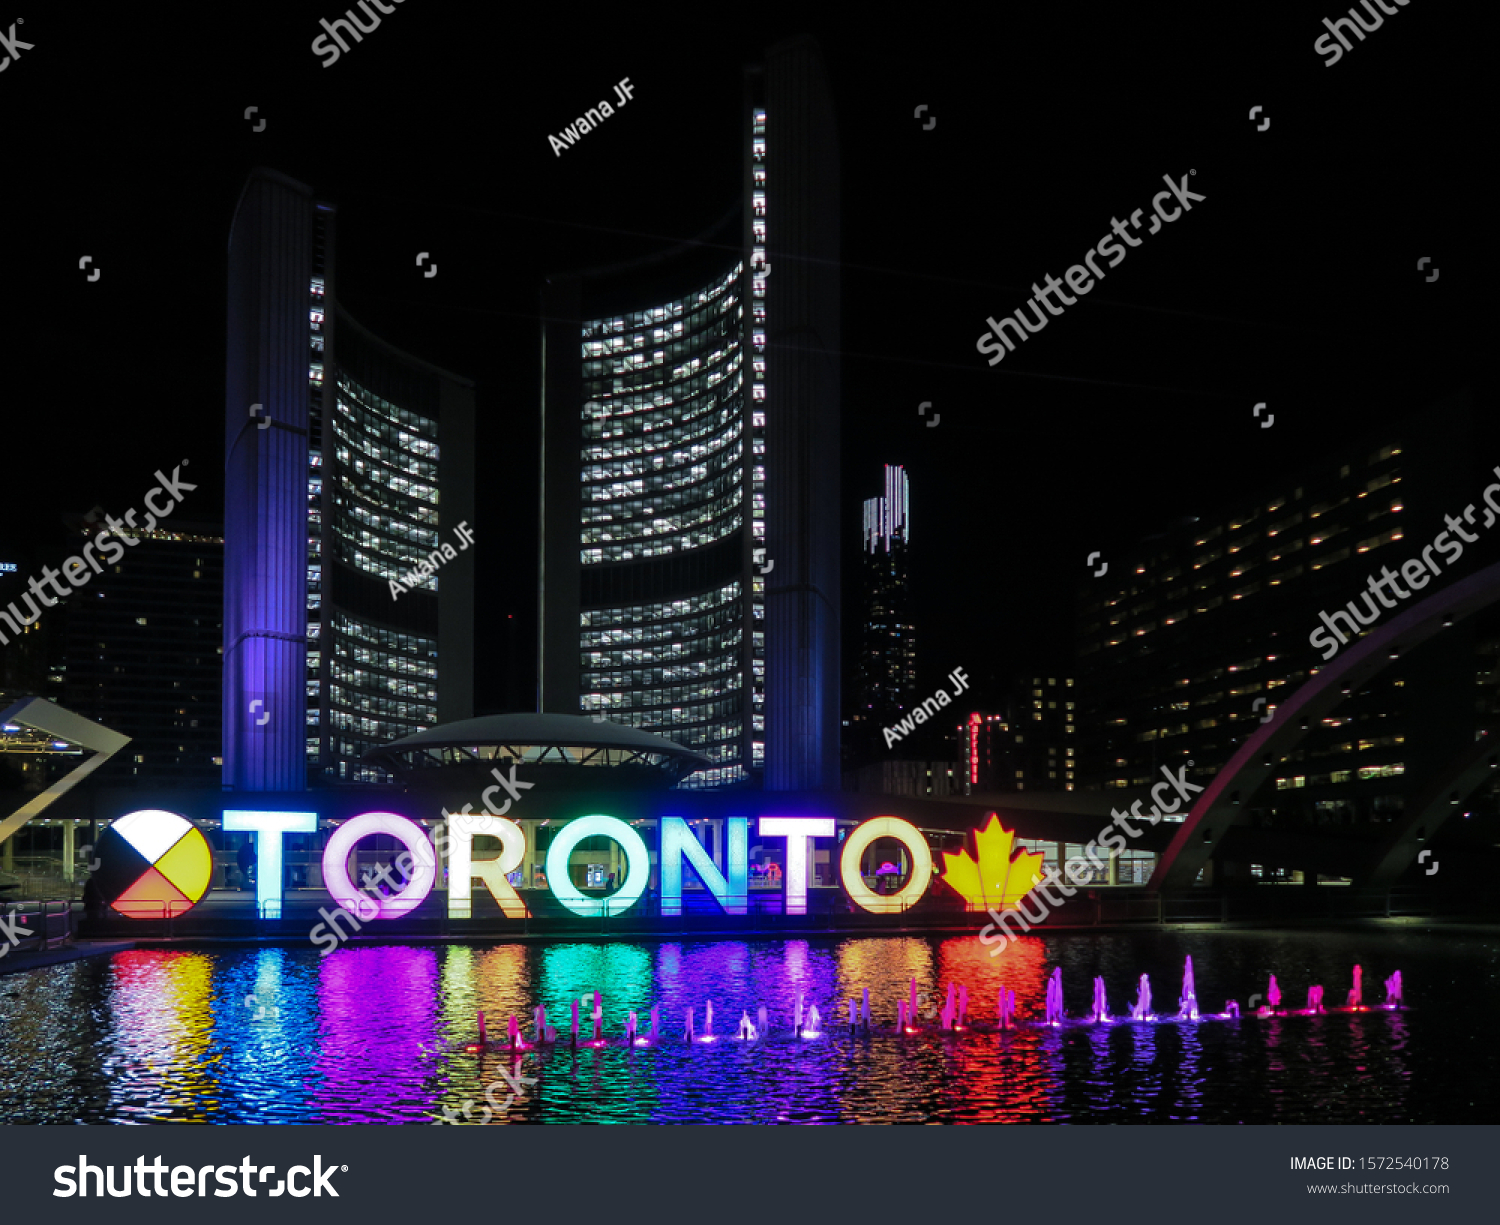 stock-photo-toronto-canada-may-nathan-ph